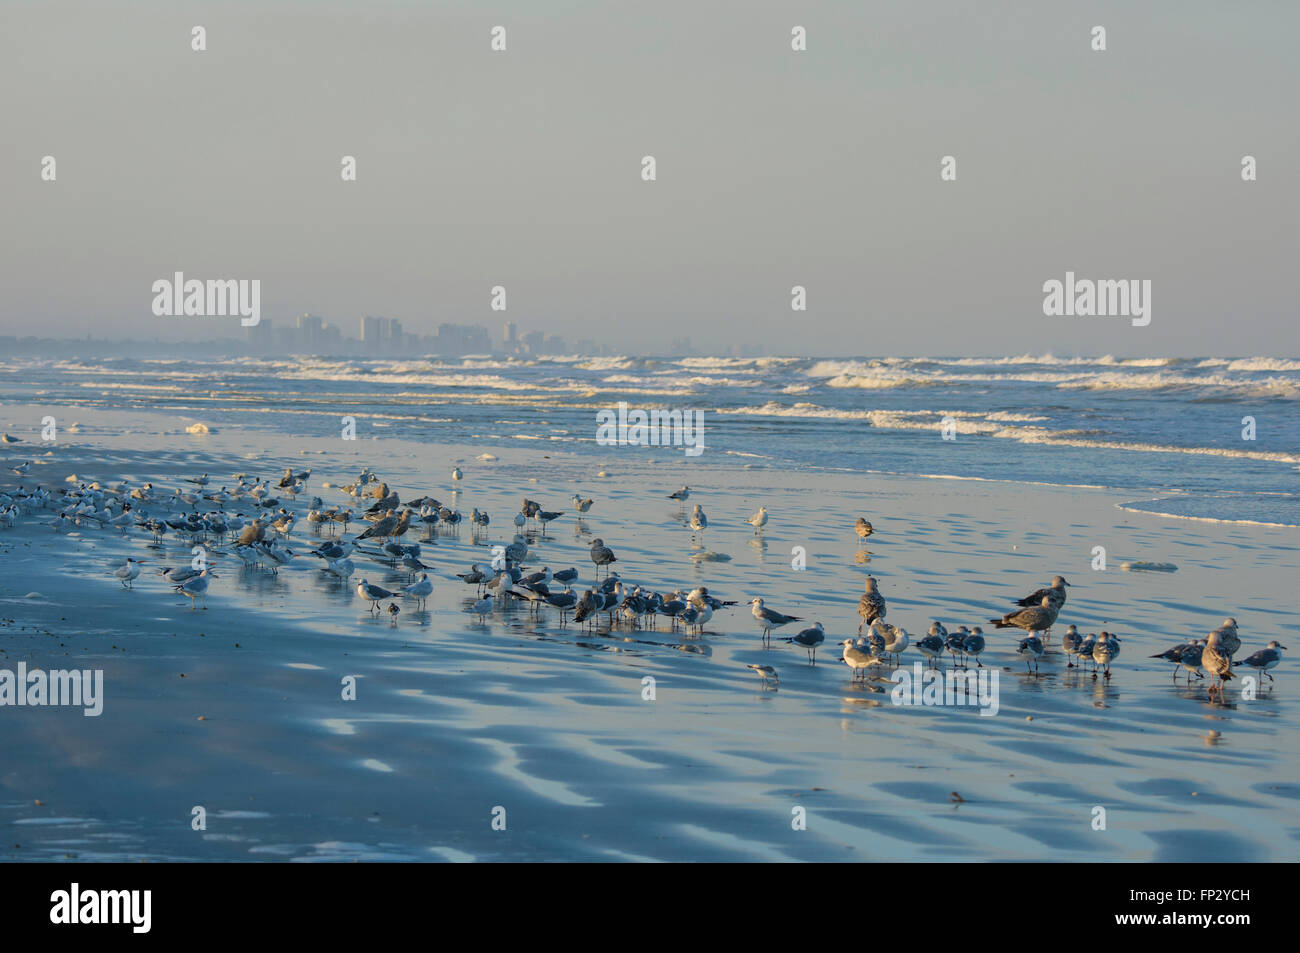 Wintering shore birds on beach at Lighthouse Point Park, Ponce Inlet, Volusia County Florida USA. Daytona beach - Stock Image